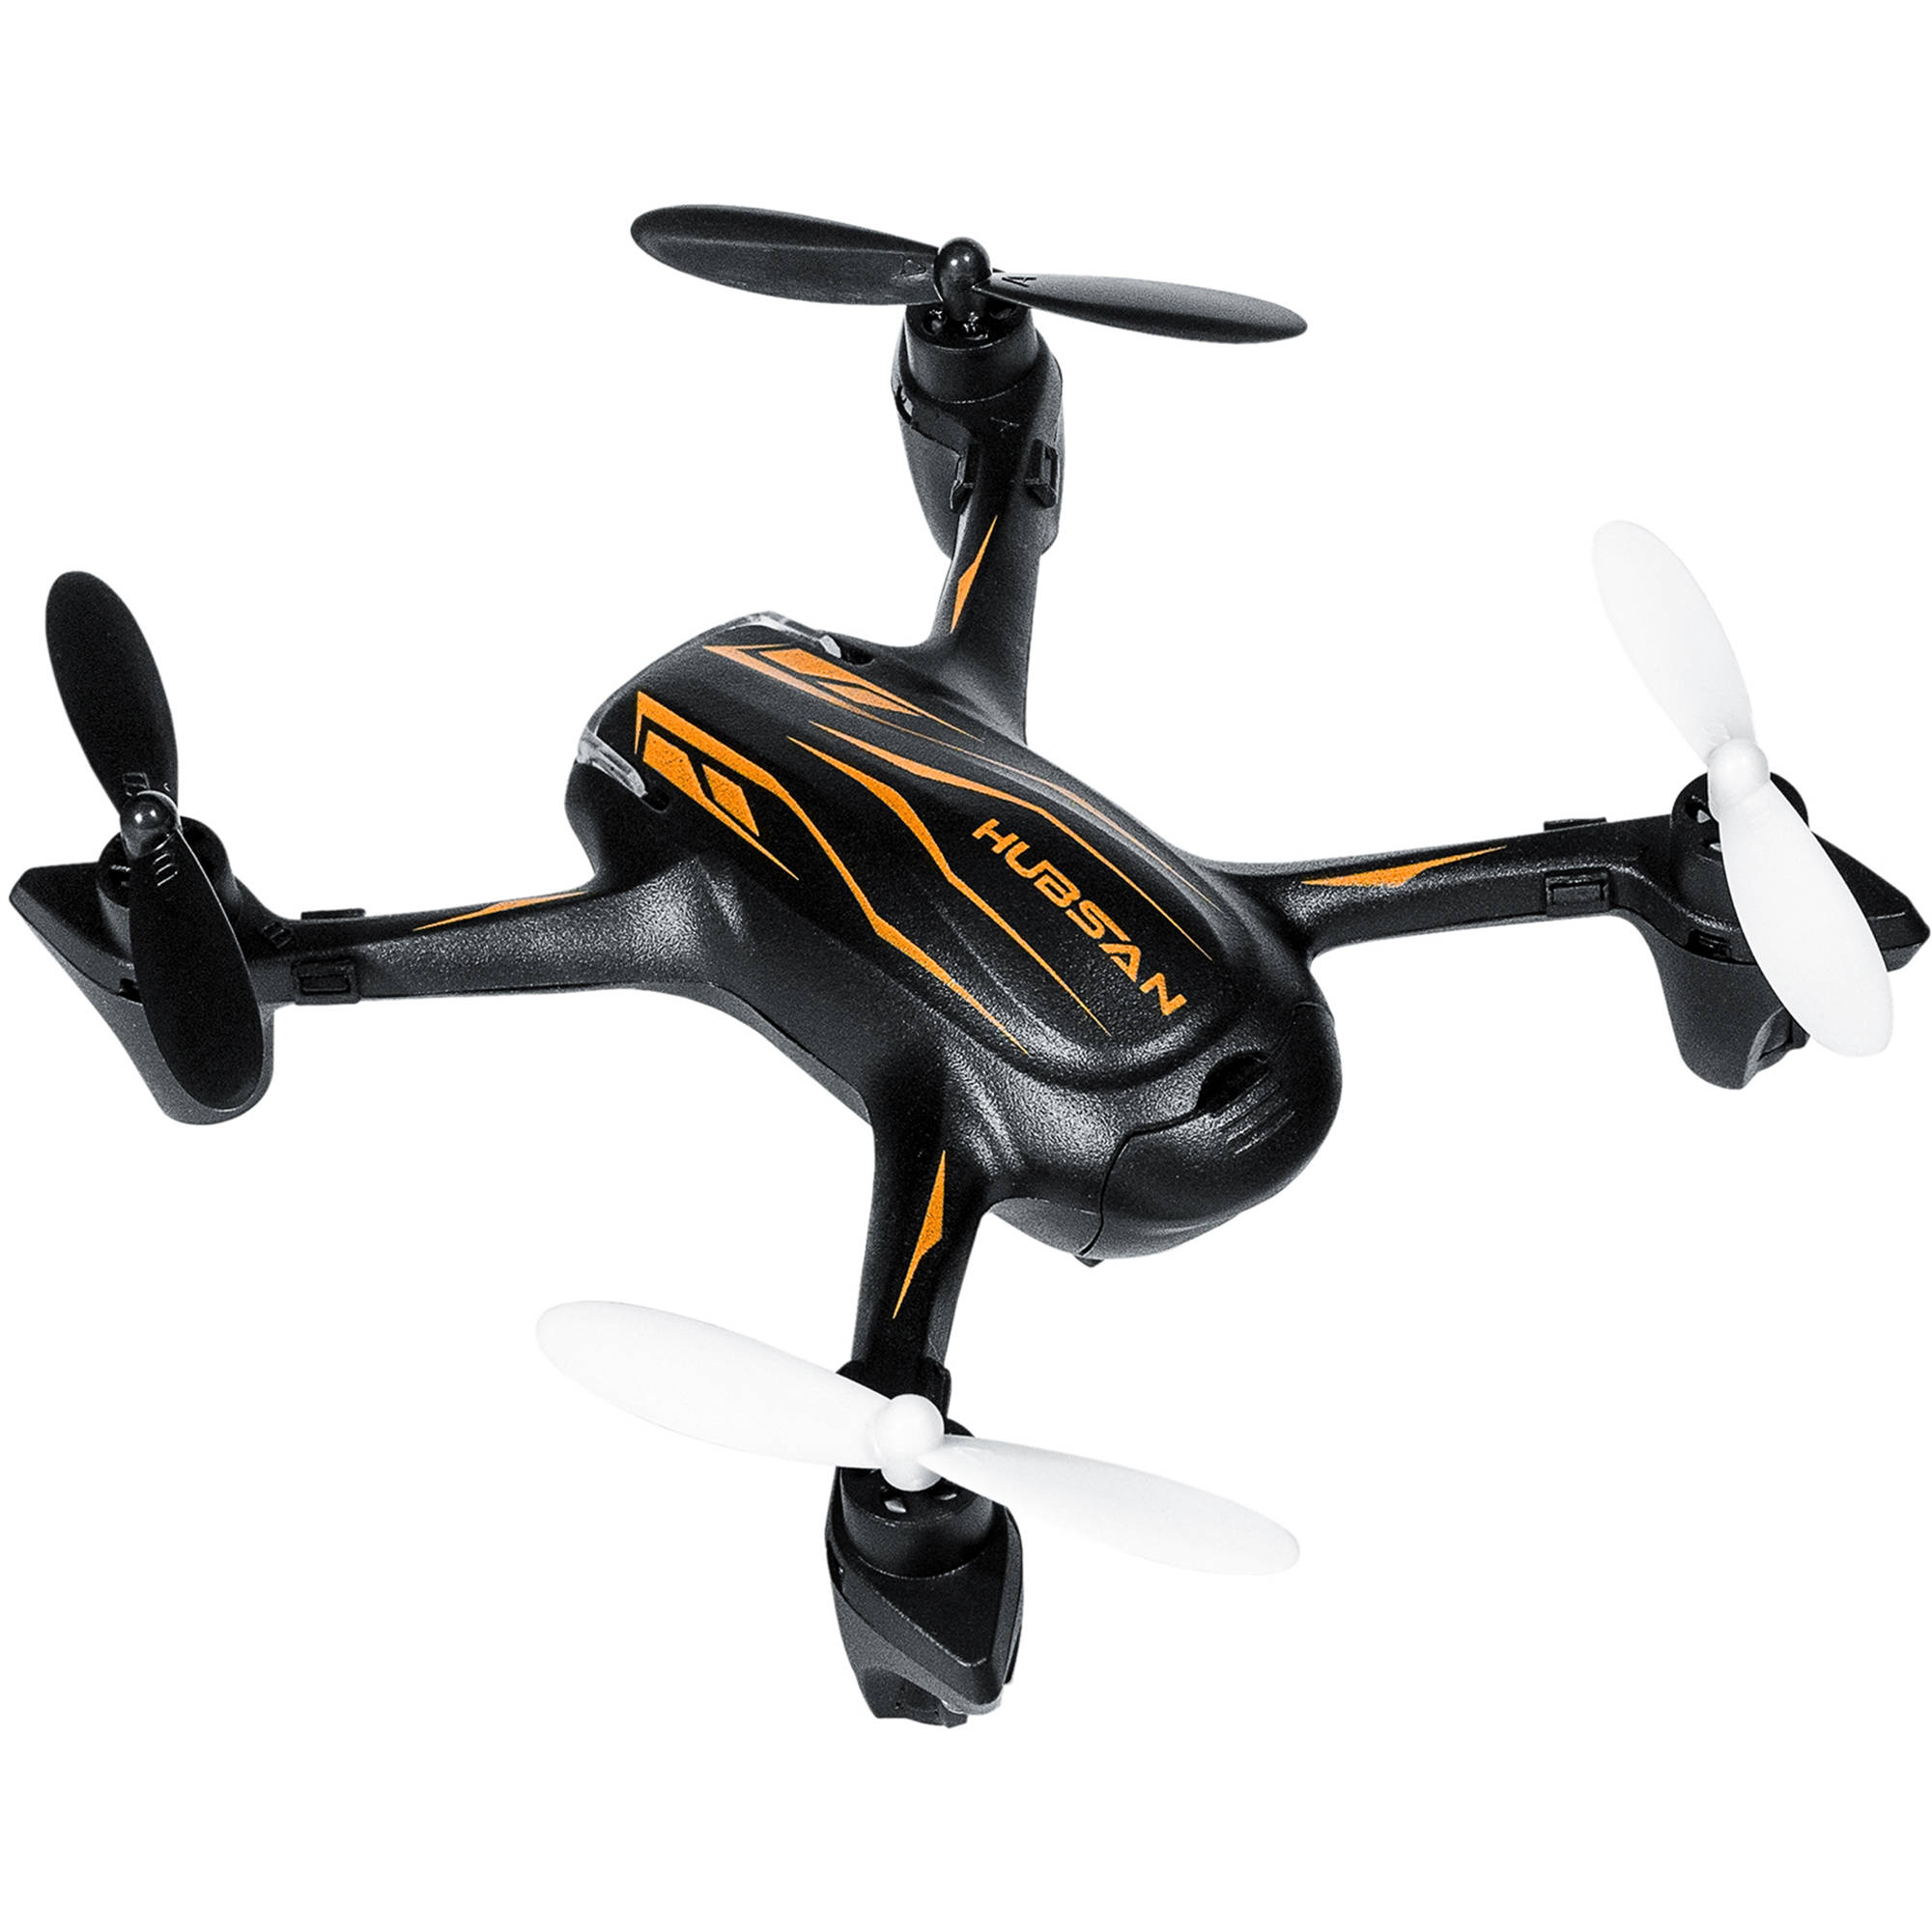 delivery drone with Hubsan X4 Plus H107p Quadcopter on Airbridgecargos First 747 8f Delivered also Mercedes Benzs New Concept Car Is The Drone Delivery Van Of The Future 2016 09 07 as well F 16 Cd additionally Drone View Dubai as well Flirtey Delivers Drugs By Drone From Ship To Shore In New Jersey.